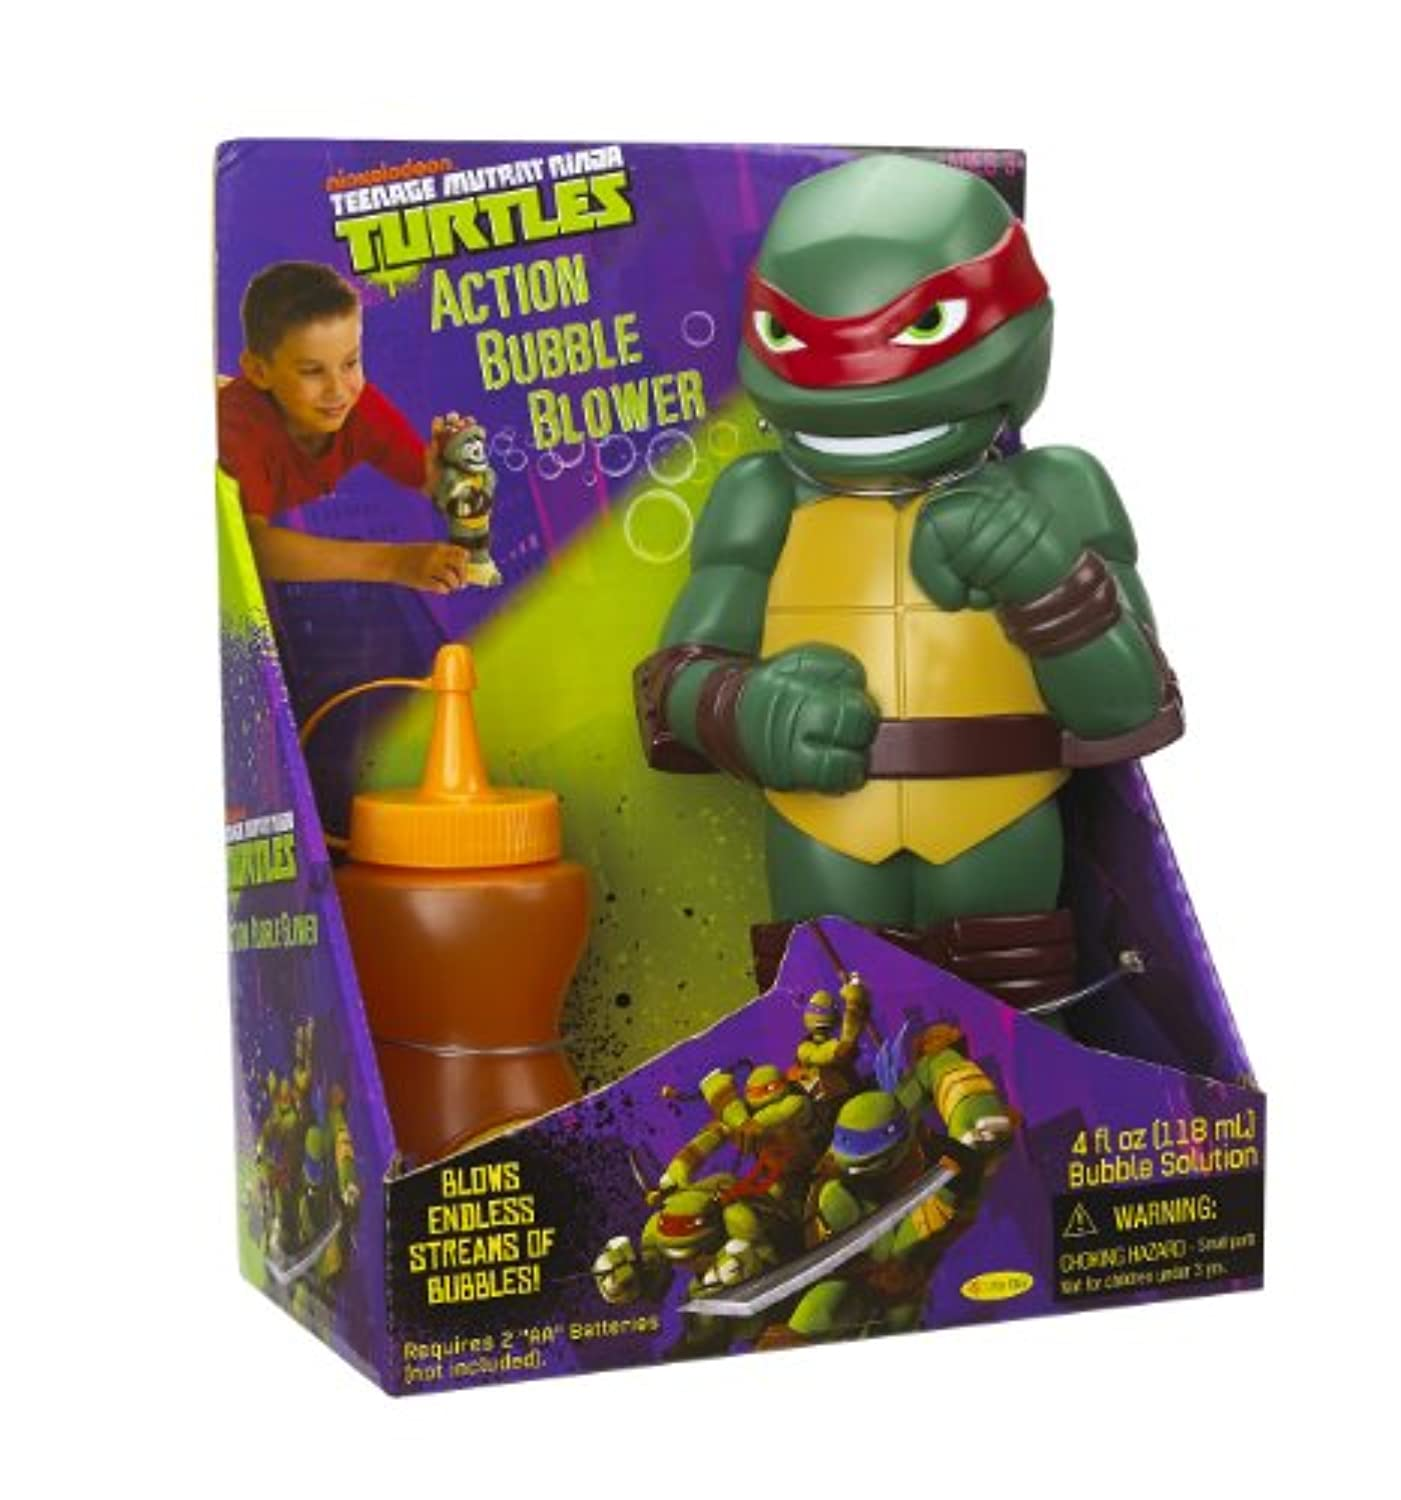 Little Kids Teenage Mutant Ninja Turtles Action Bubble Blower, Raphael by Teenage Mutant Ninja Turtles